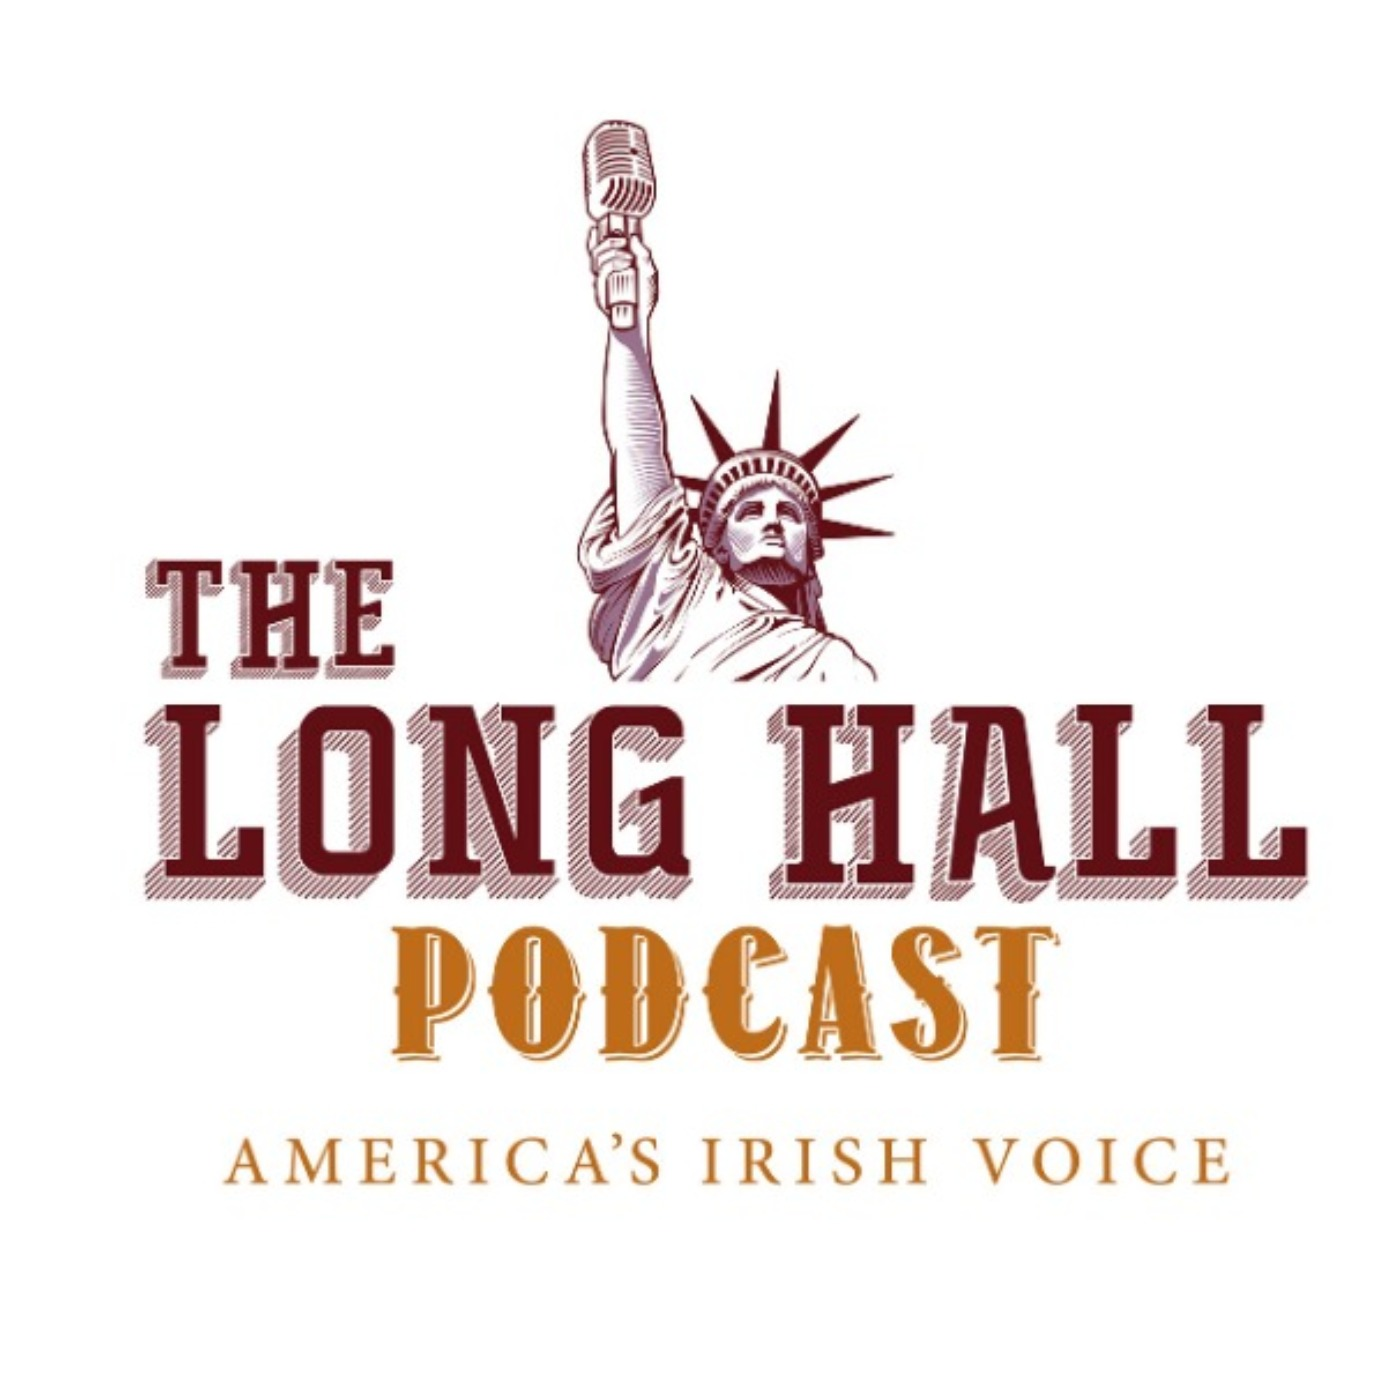 The Long Hall Podcast - America's Irish Voice